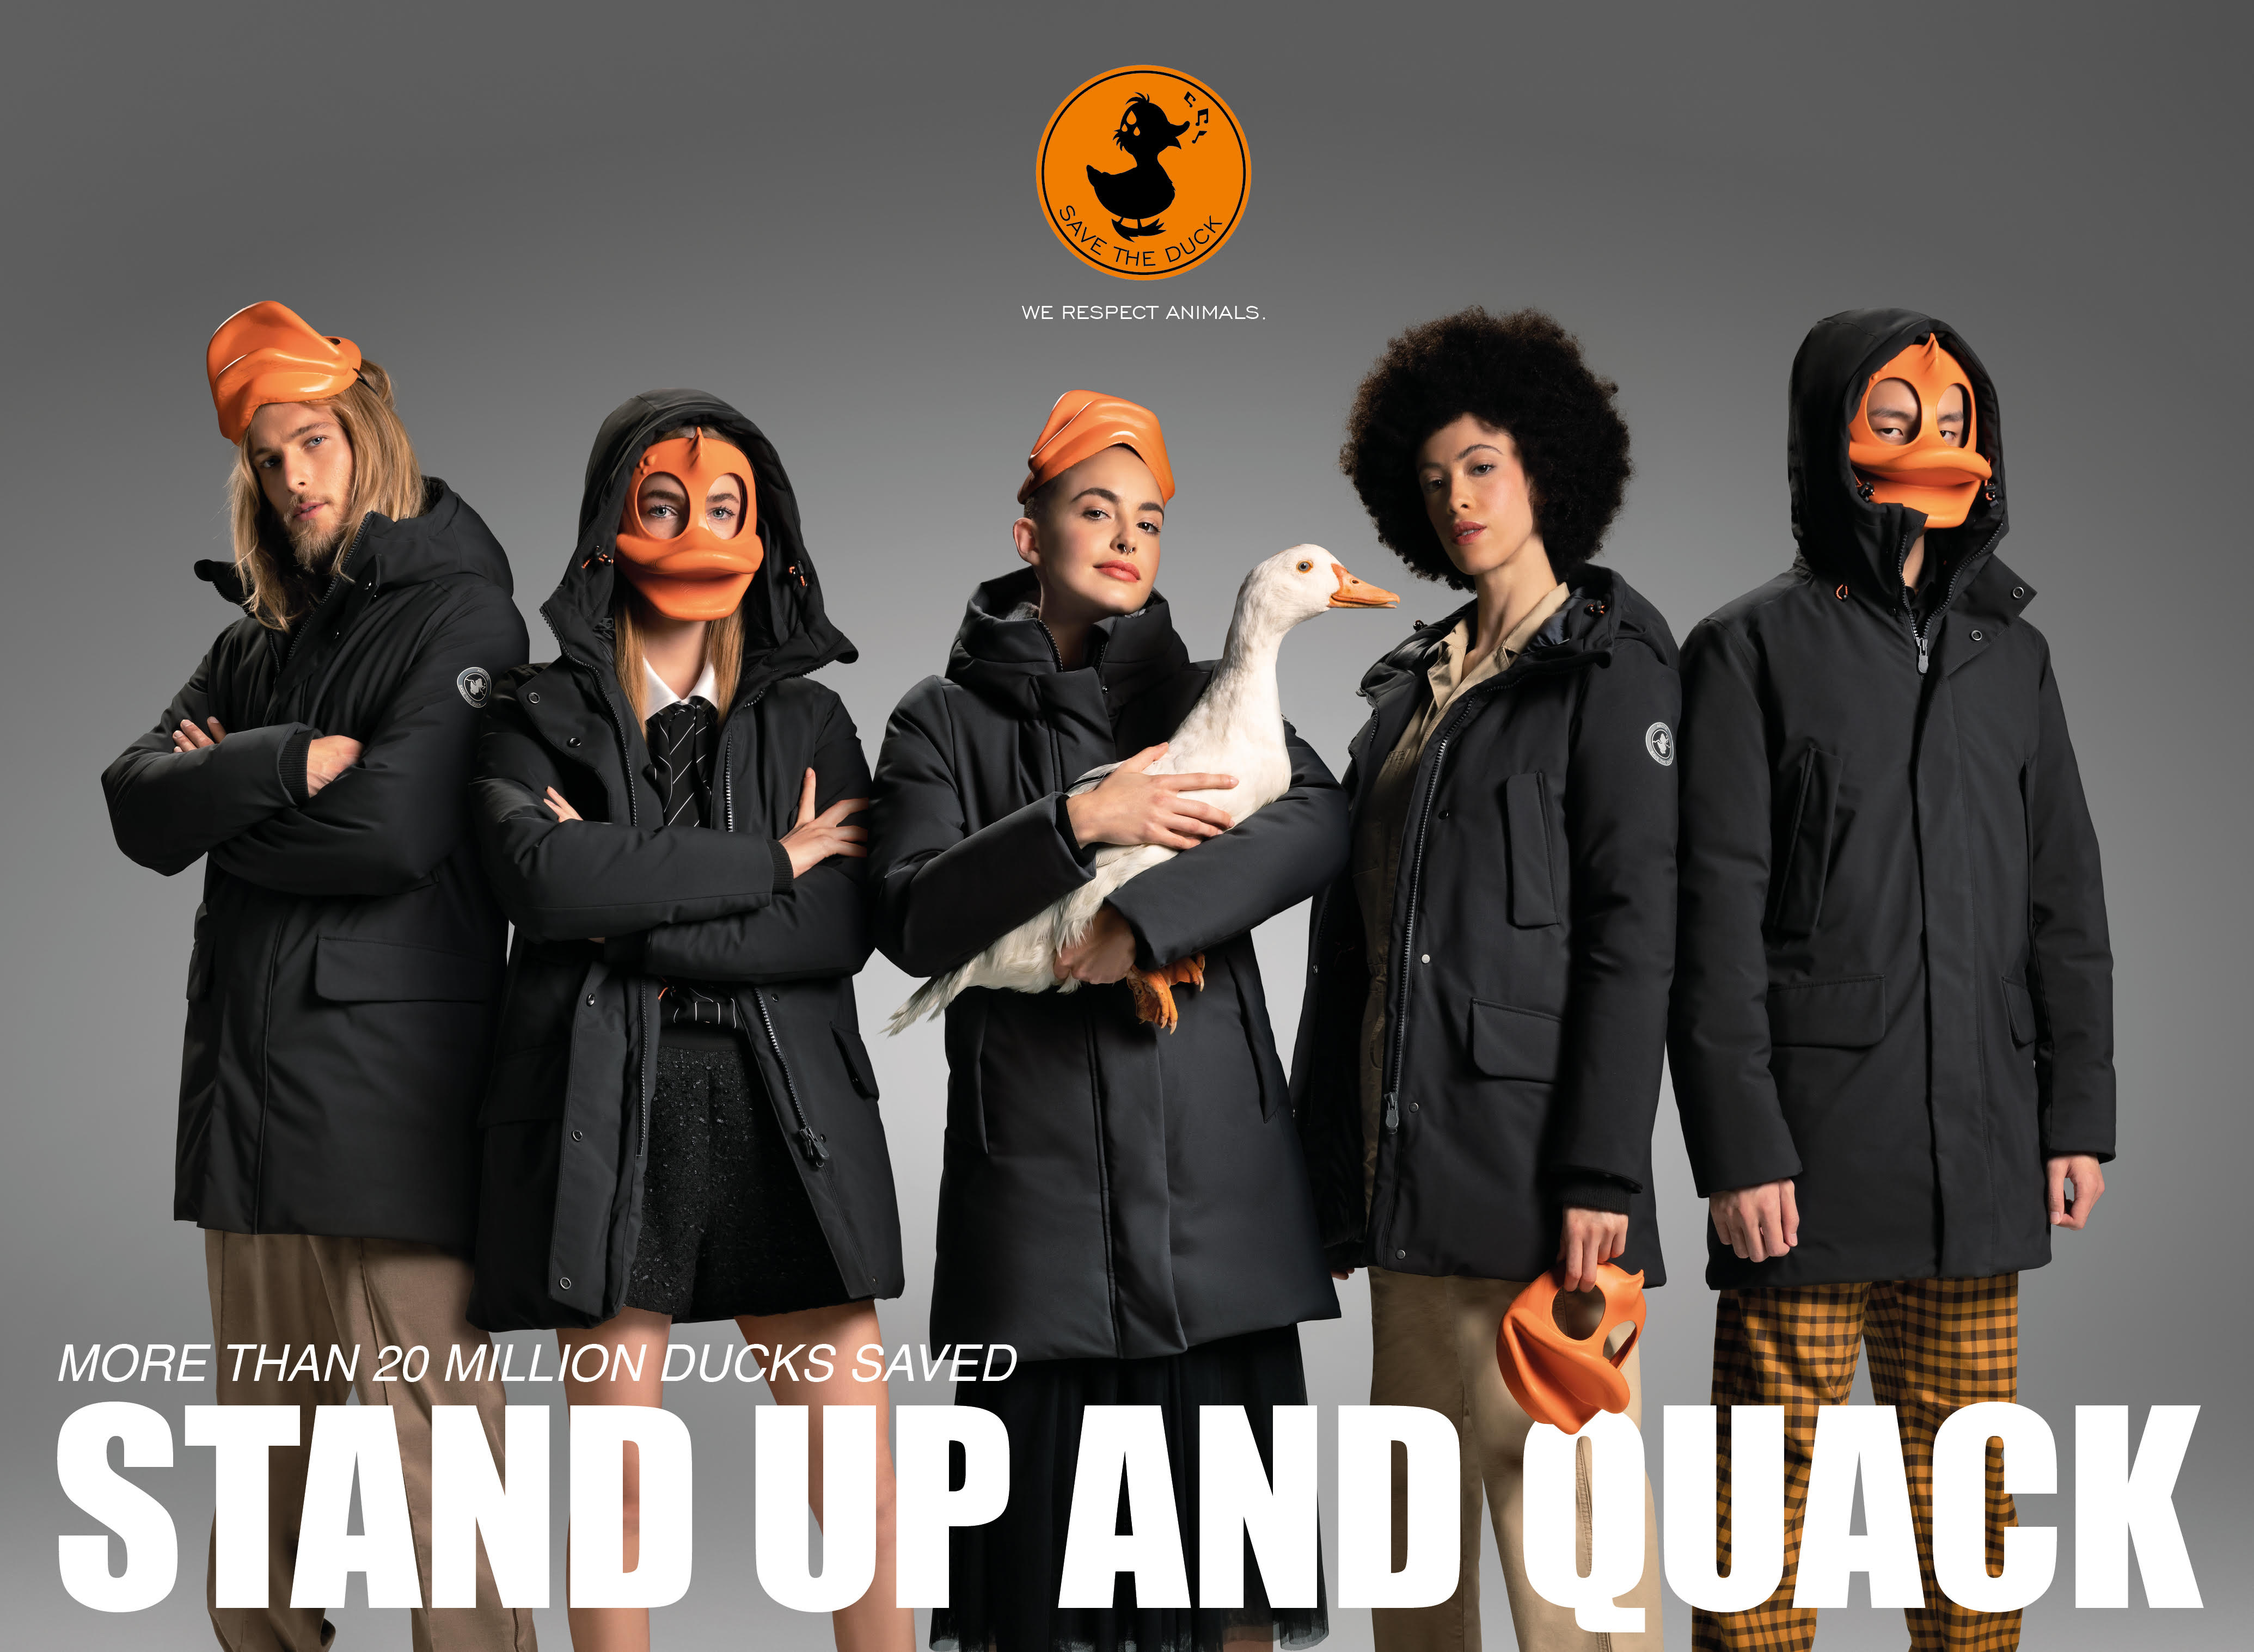 STAND UP AND QUACK – Save the duck